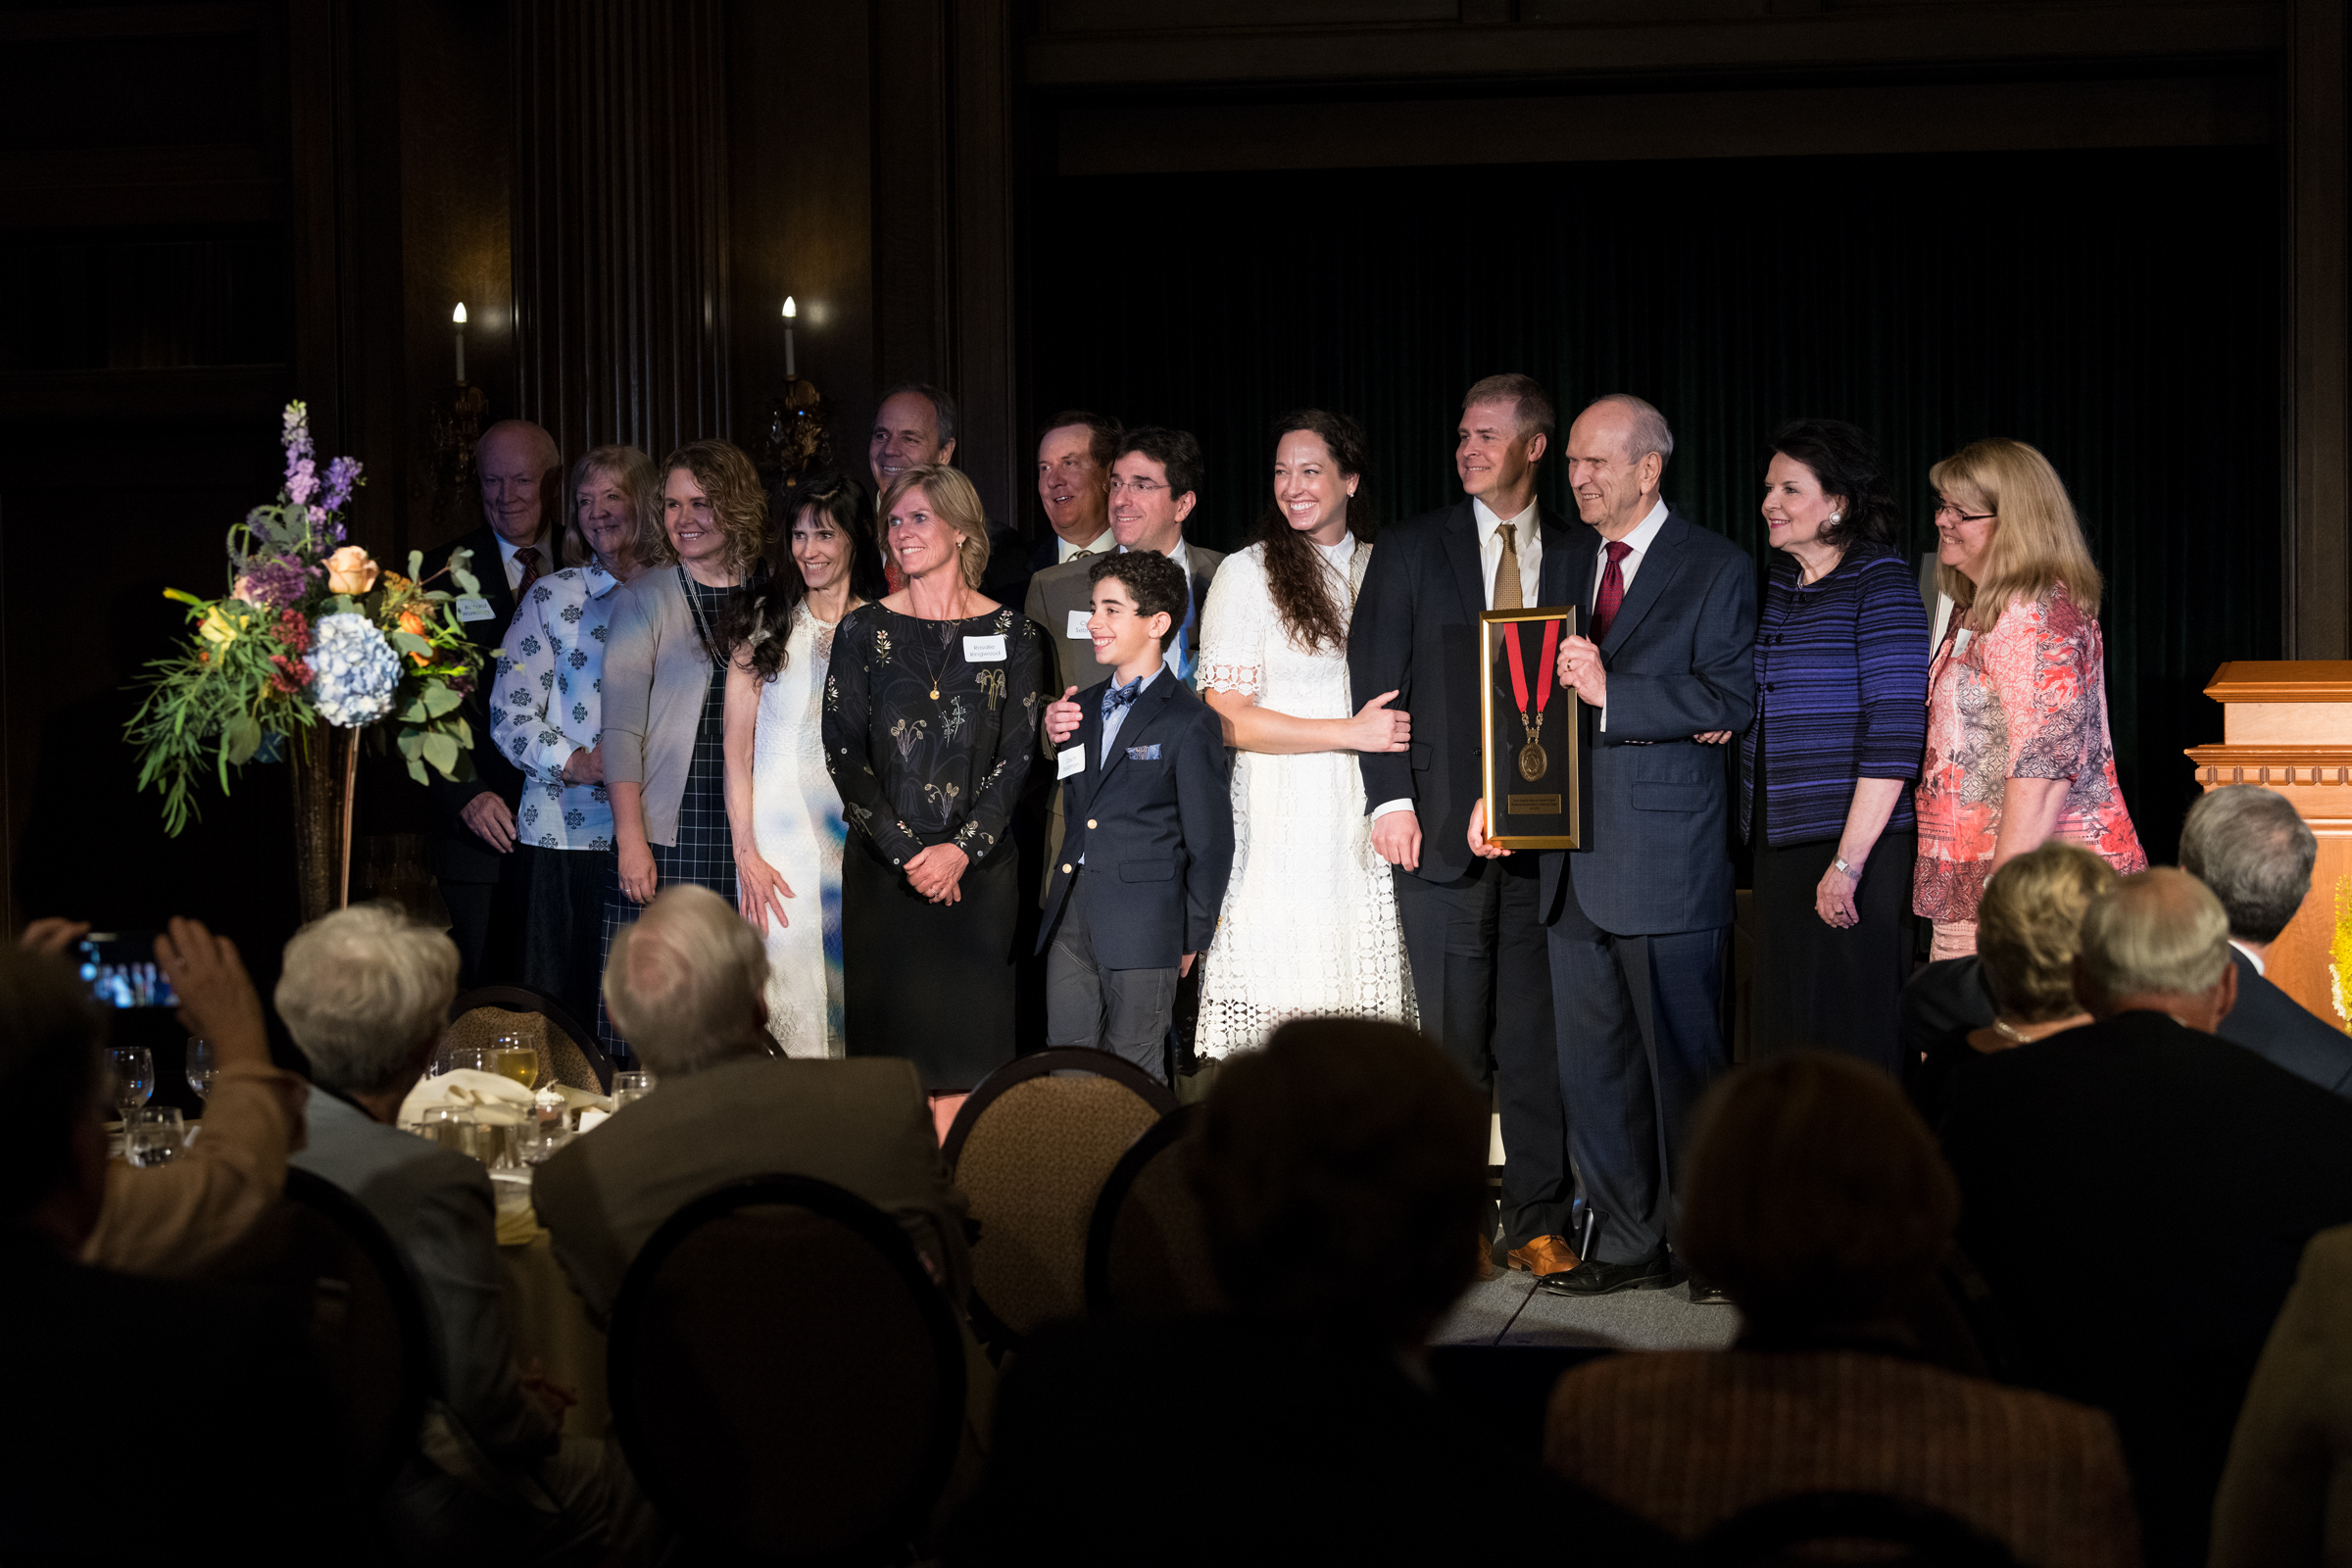 President Russell M. Nelson poses for a photo with his wife, Wendy, and members of his family and Dr. Craig H. Selzman after the University of Utah School of Medicine announced the Dr. Russell M. Nelson and Dantzel W. Nelson Presidential Endowed Chair in Cardiothoracic Surgery and awarded the chair to Selzman at a dinner on Temple Square on Friday, June 15, 2018. Dantzel is President Nelson's first wife who contributed greatly to her husband's medical career.